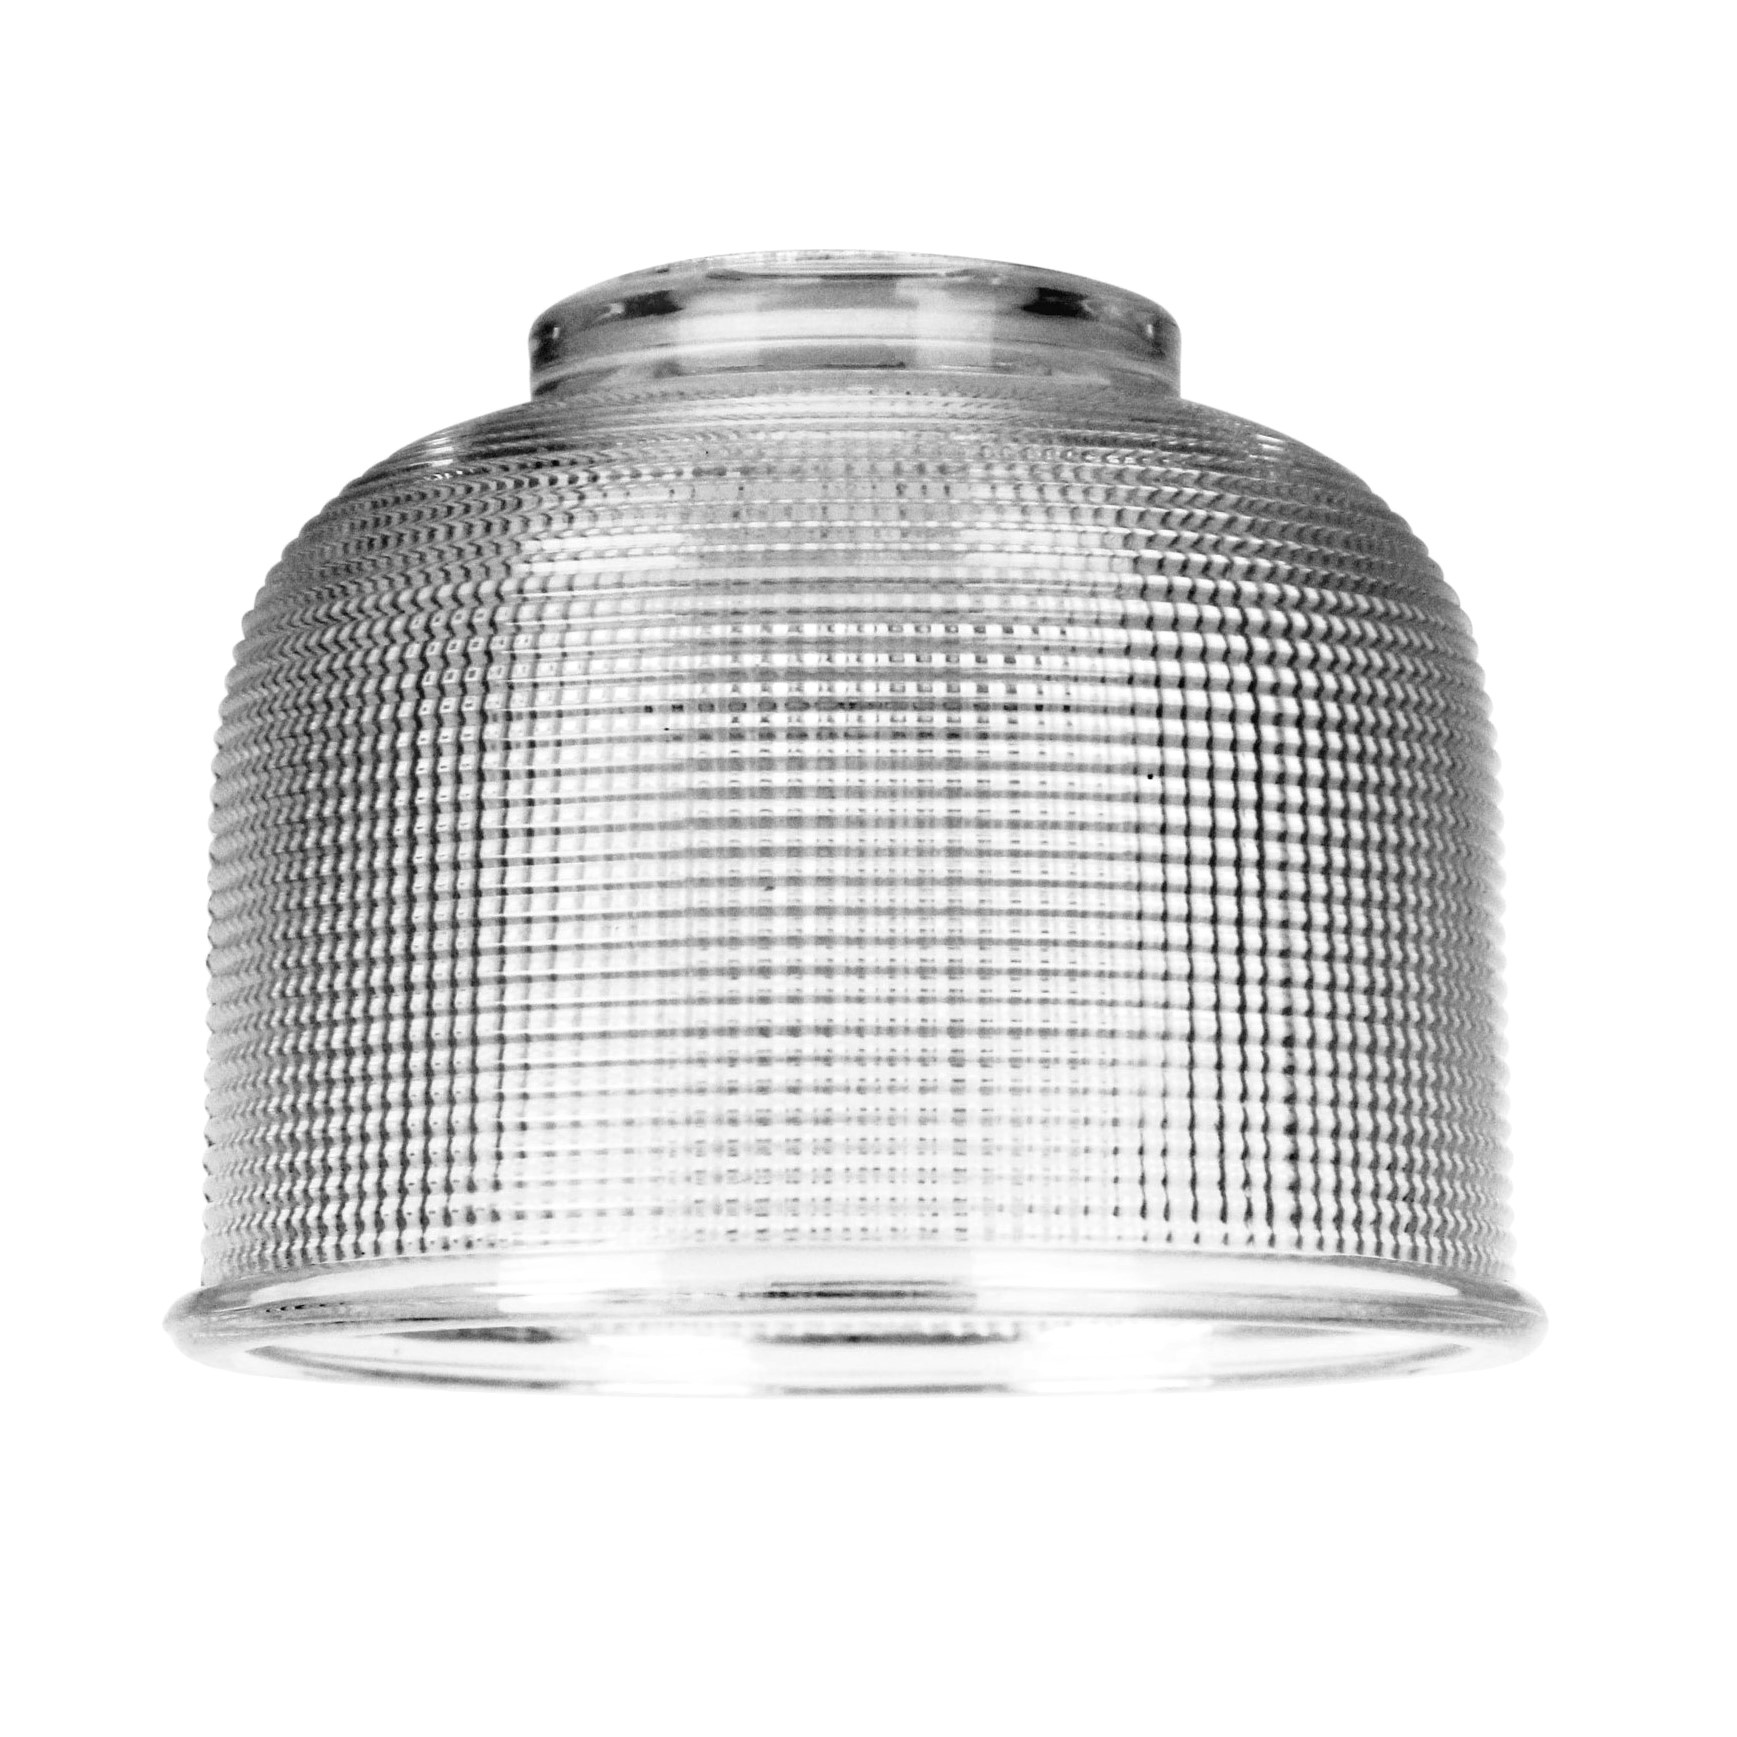 Maison Halophane Glass Pendant Light Shade, 15cm, Clear